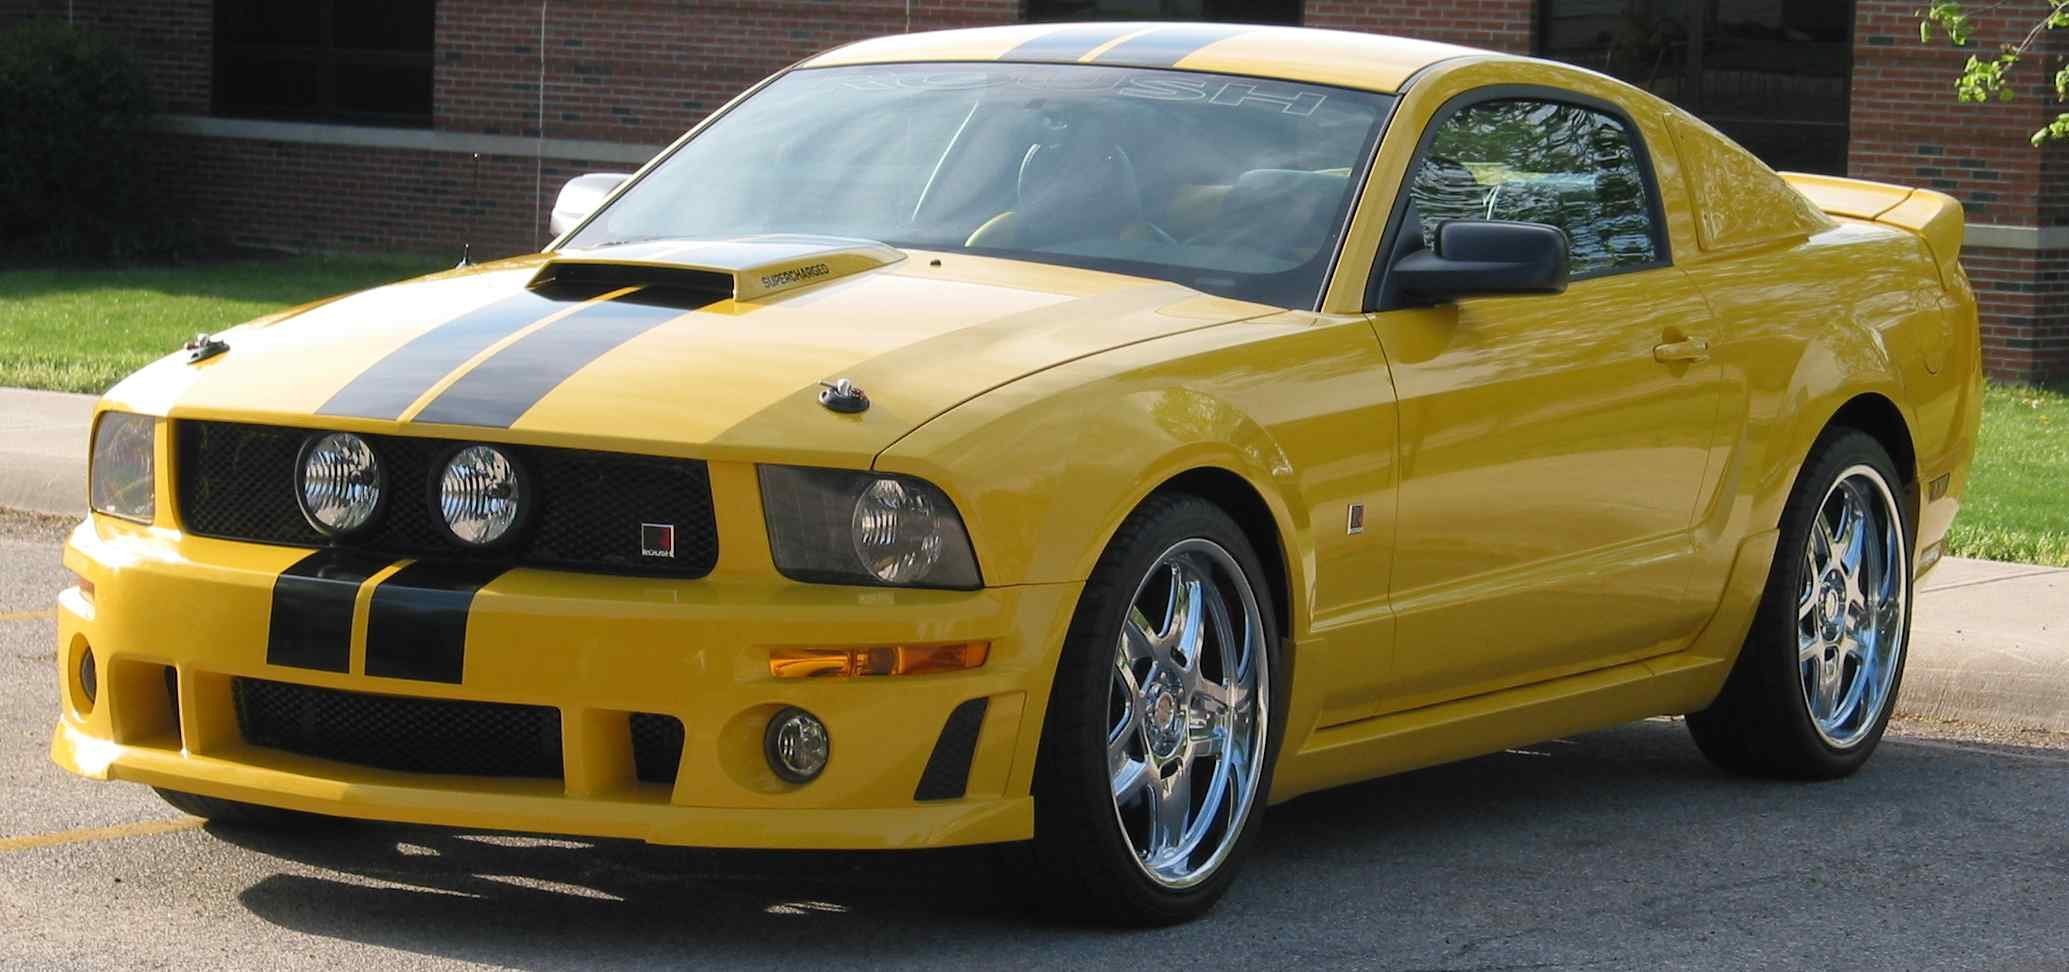 Mustang 2010 Custom >> New owner of 2006 Screaming Yellow Roush - Ford Mustang Forum